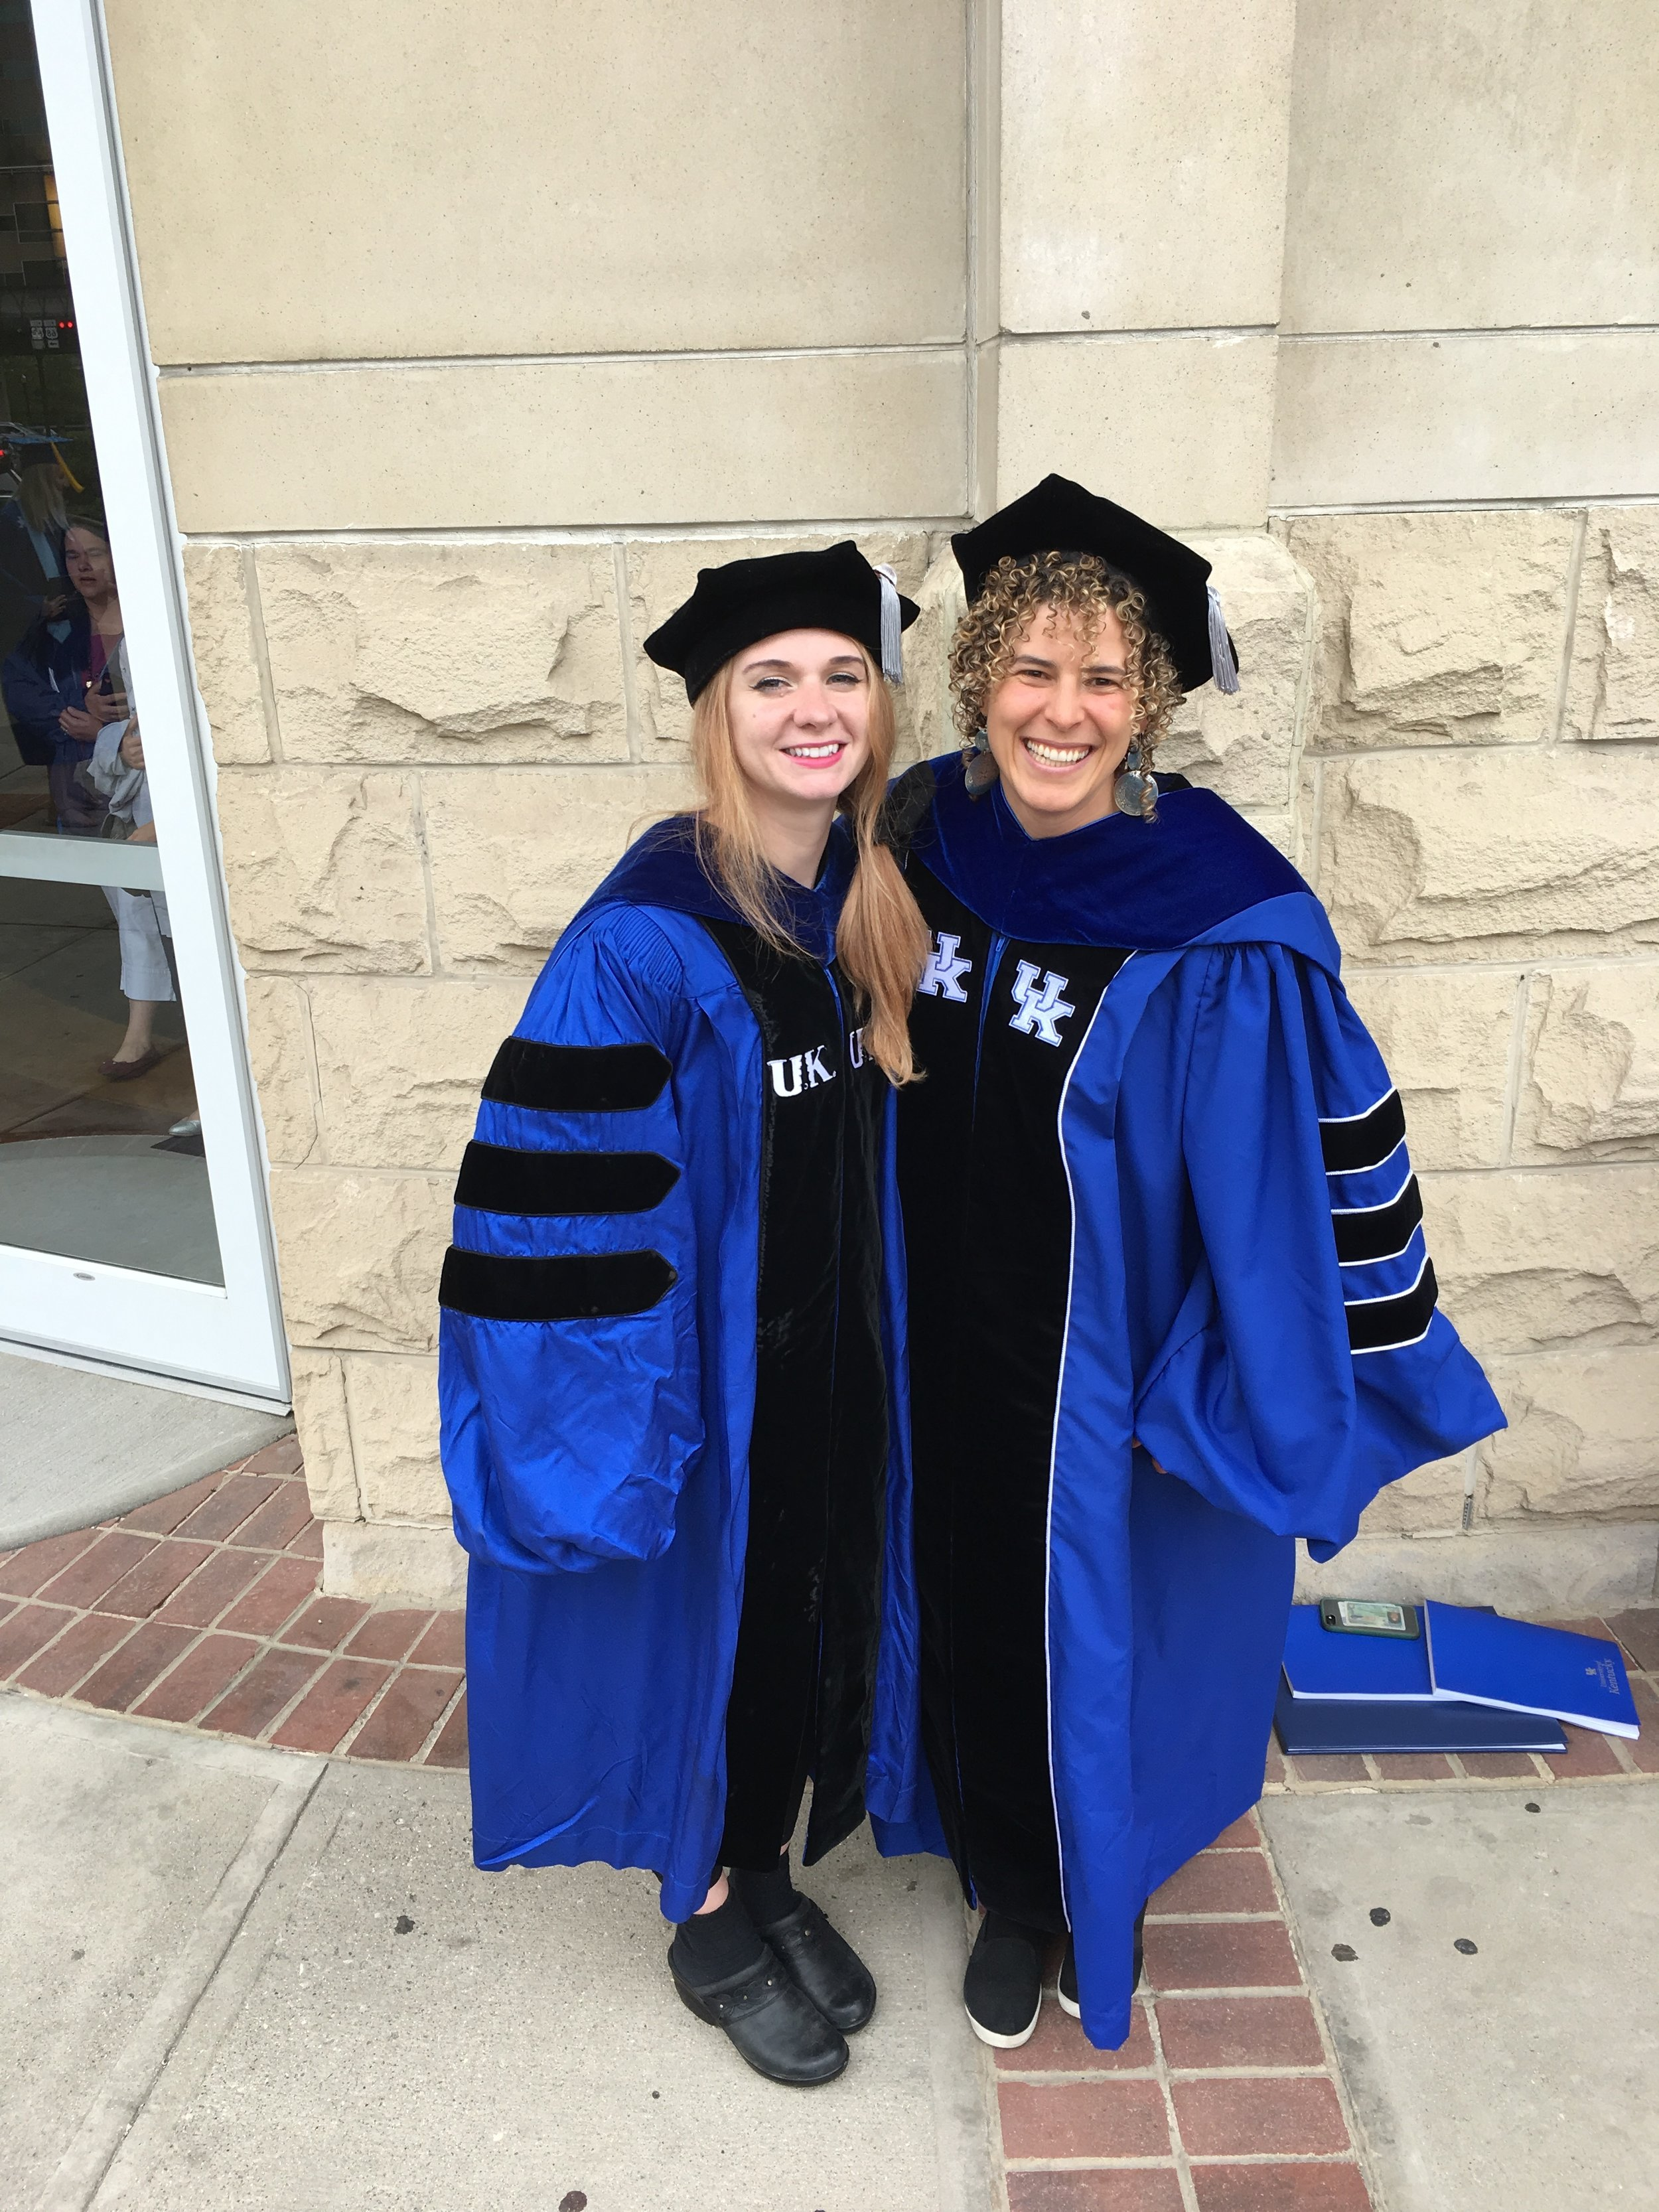 Drs. Jacqueline Dillard (left) and Rose Marks (right) just out of their commencement ceremony where they received a Ph.D. in Biology. Congrats!